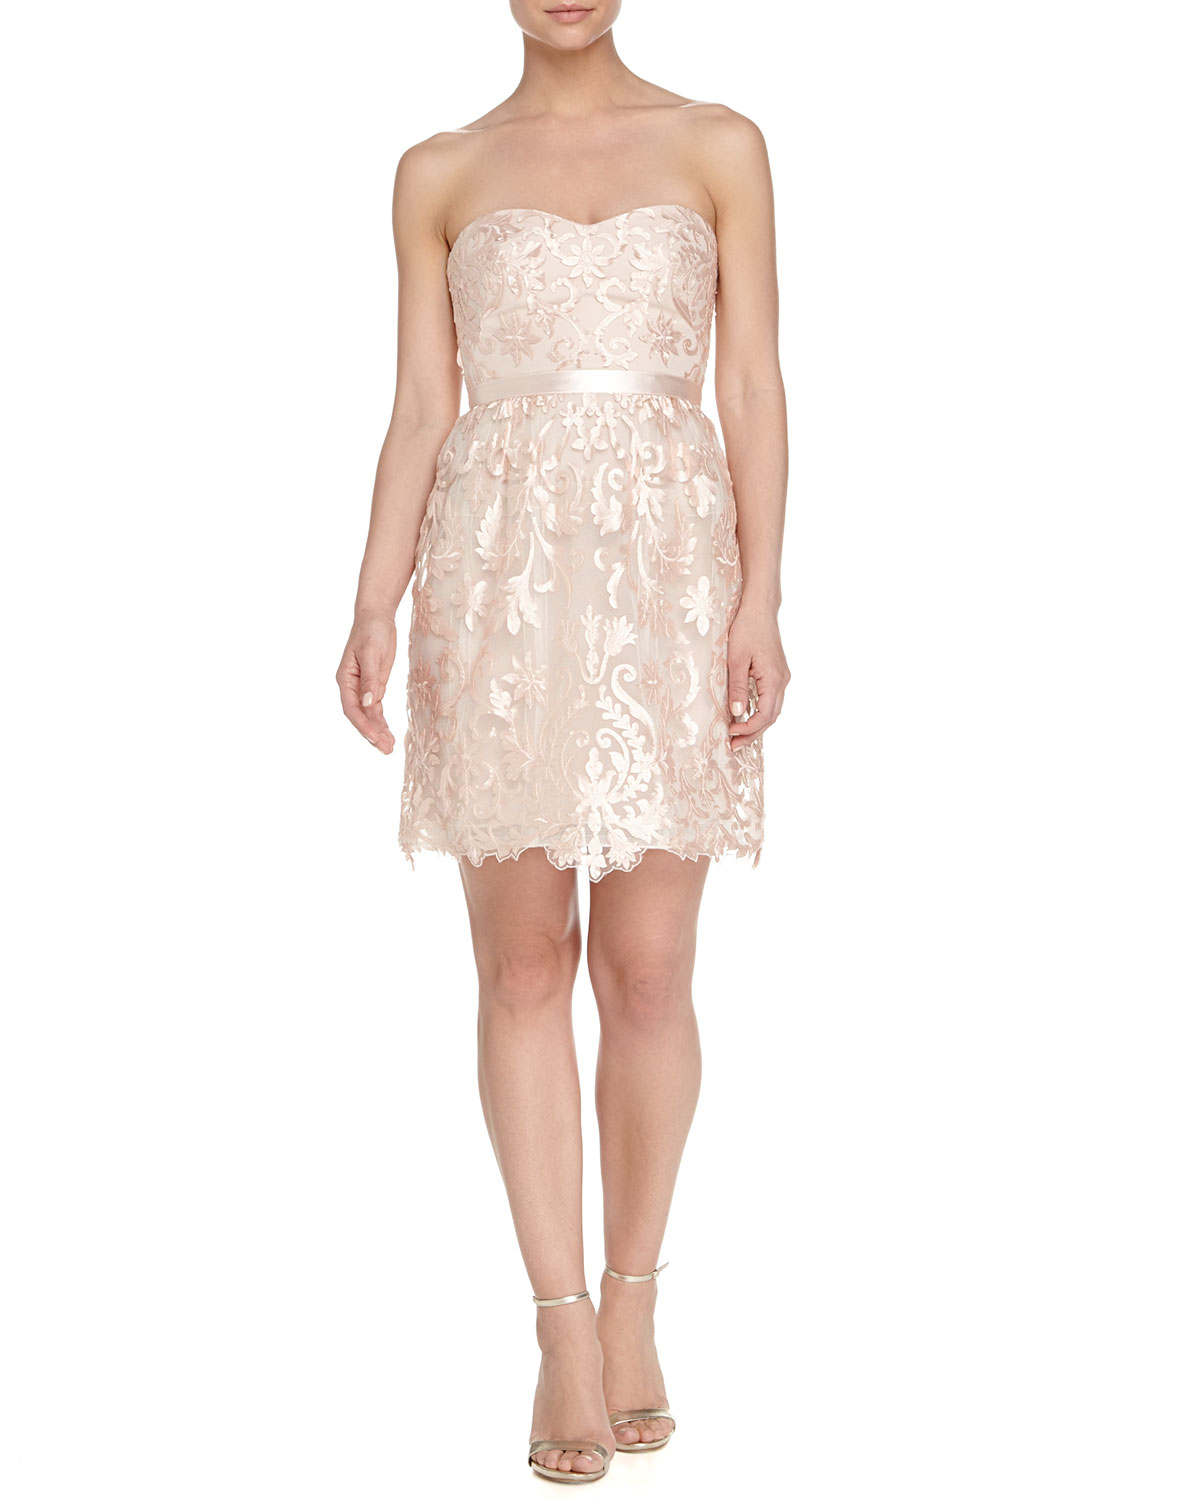 Notte by marchesa strapless belted floral lace cocktail dress in pink